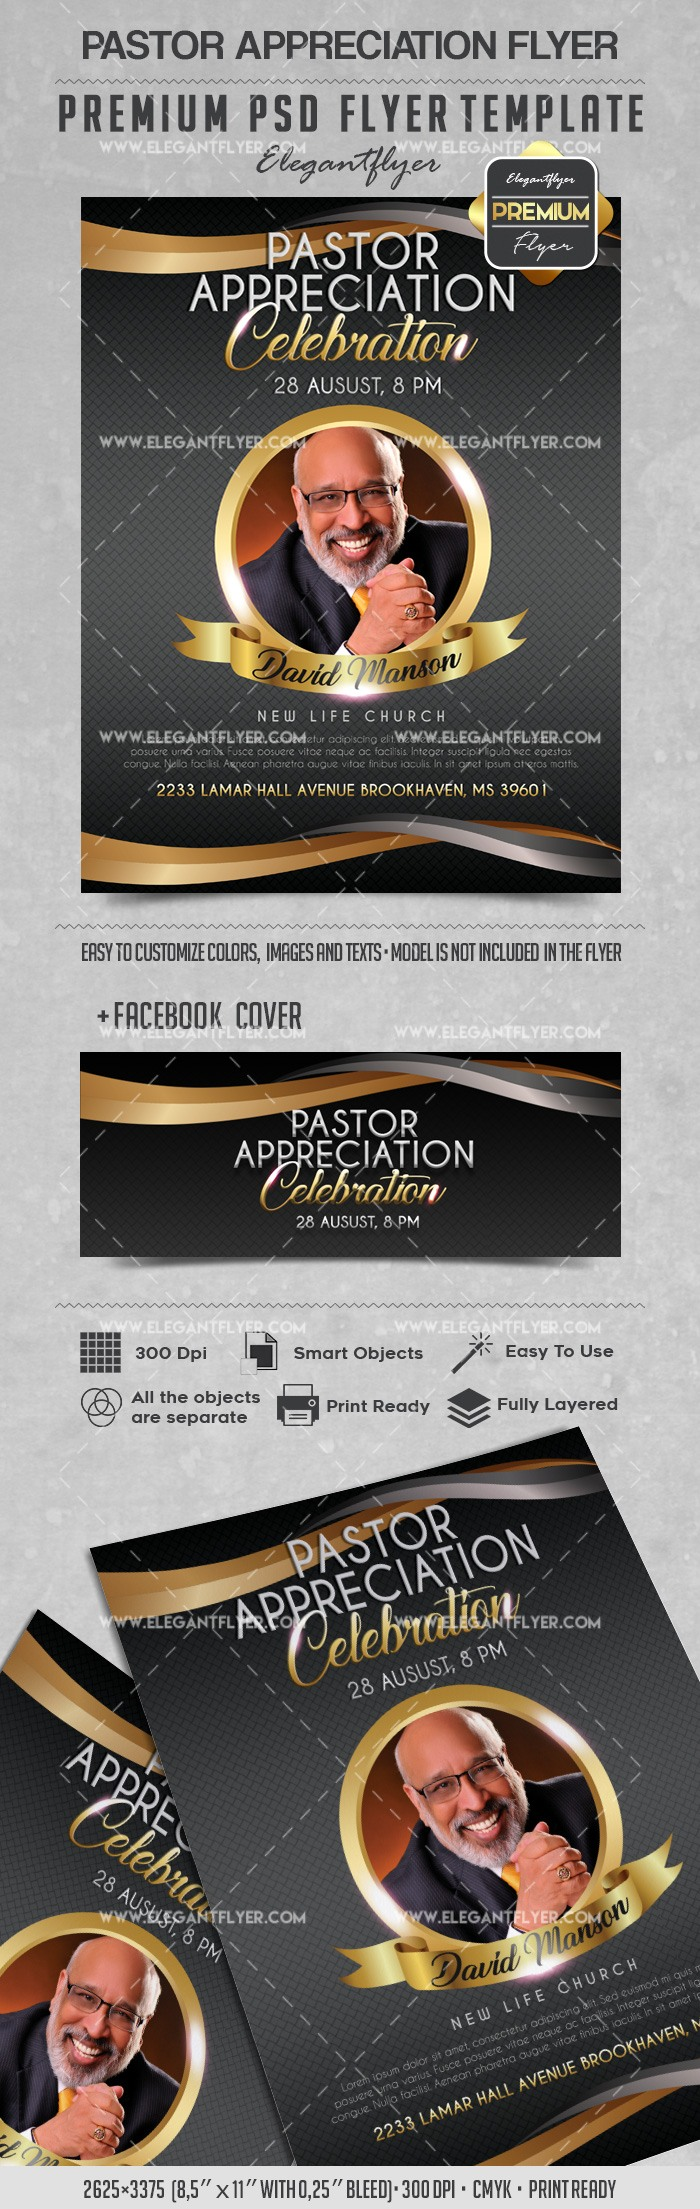 Theme for Pastor Appreciation Celebration Flyer